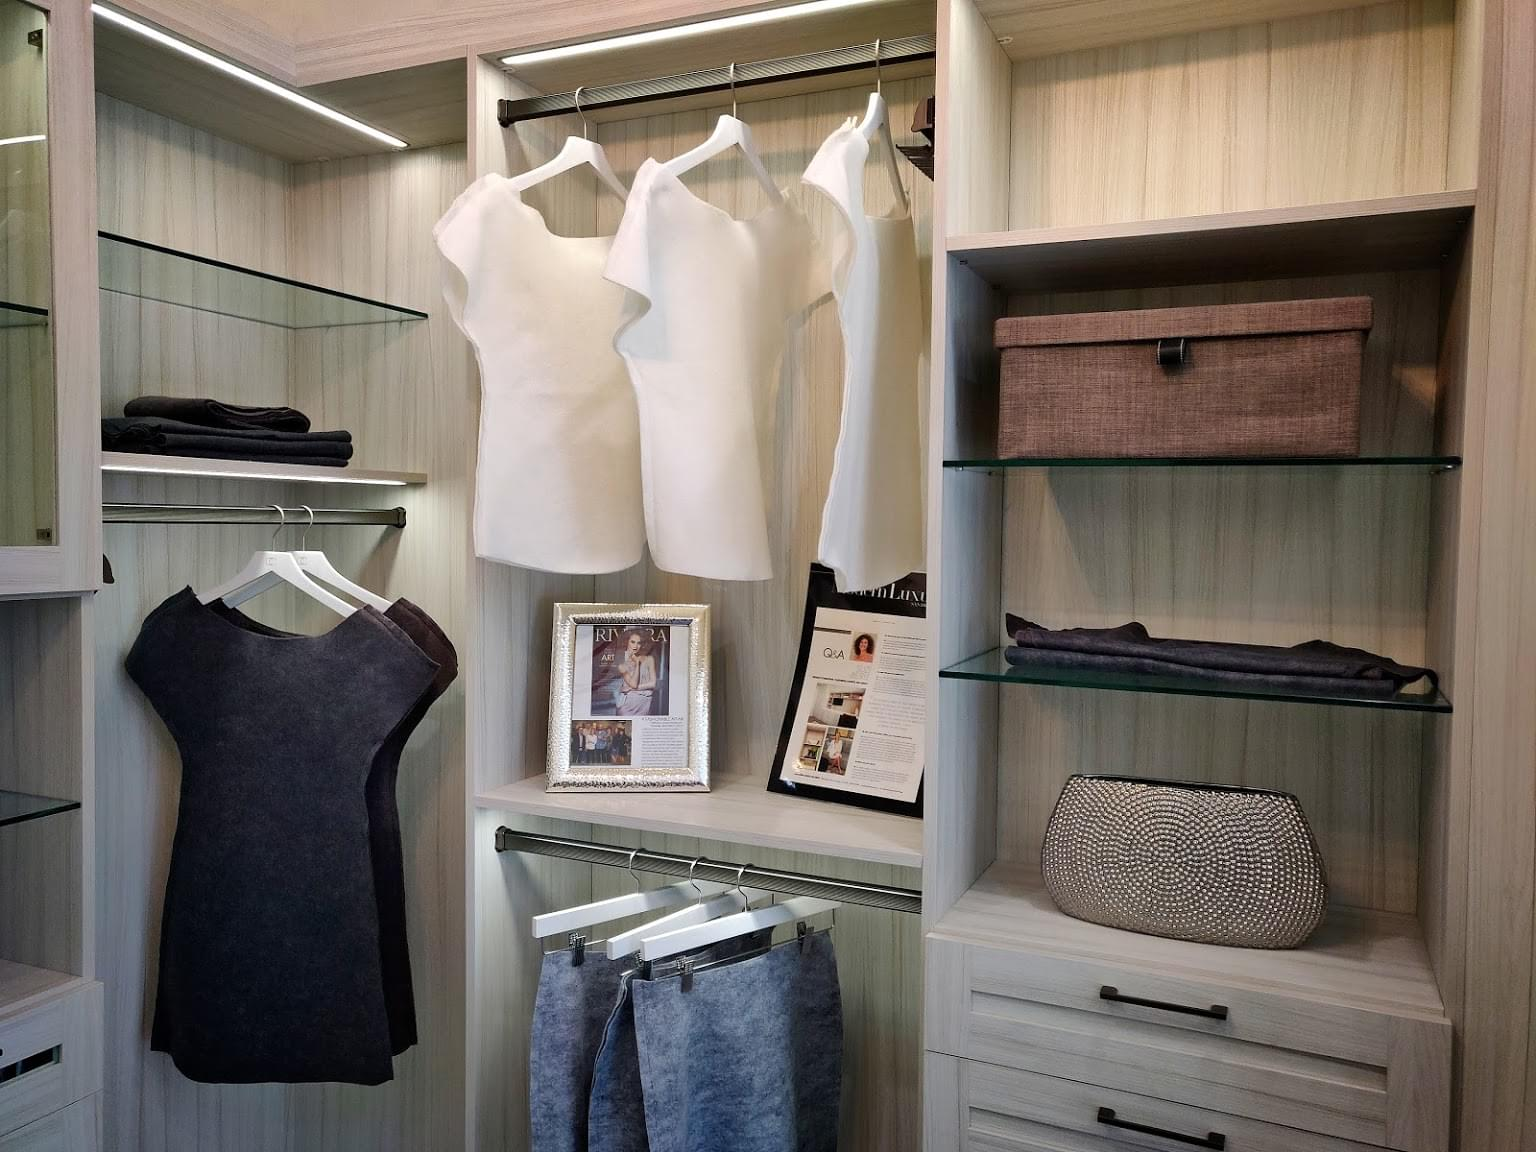 California Closets Interior designer in La Jolla, CA